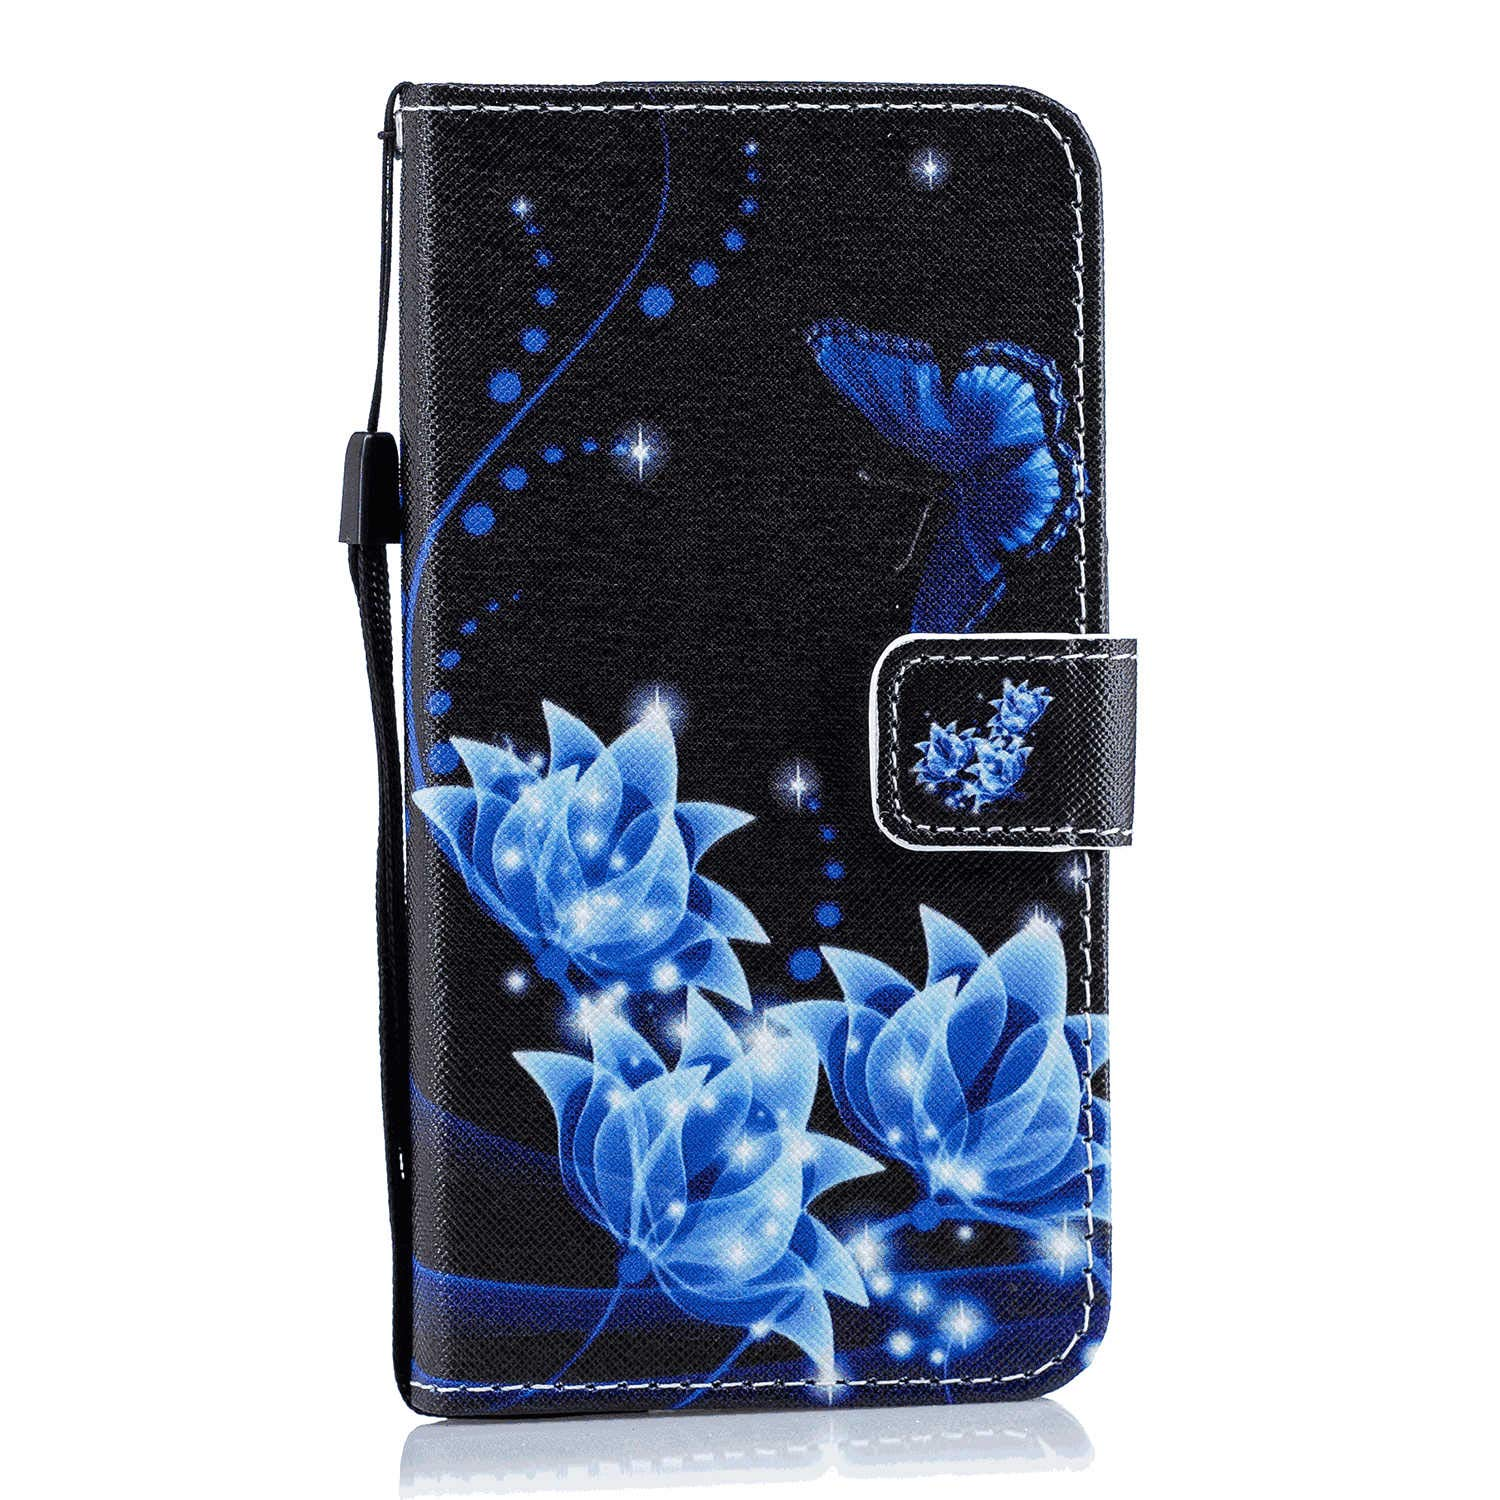 Cover for Huawei MATE20 PRO Leather Extra-Durable Business Kickstand Mobile Phone Cover Card Holders with Free Waterproof-Bag Blue4 Huawei MATE20 PRO Flip Case